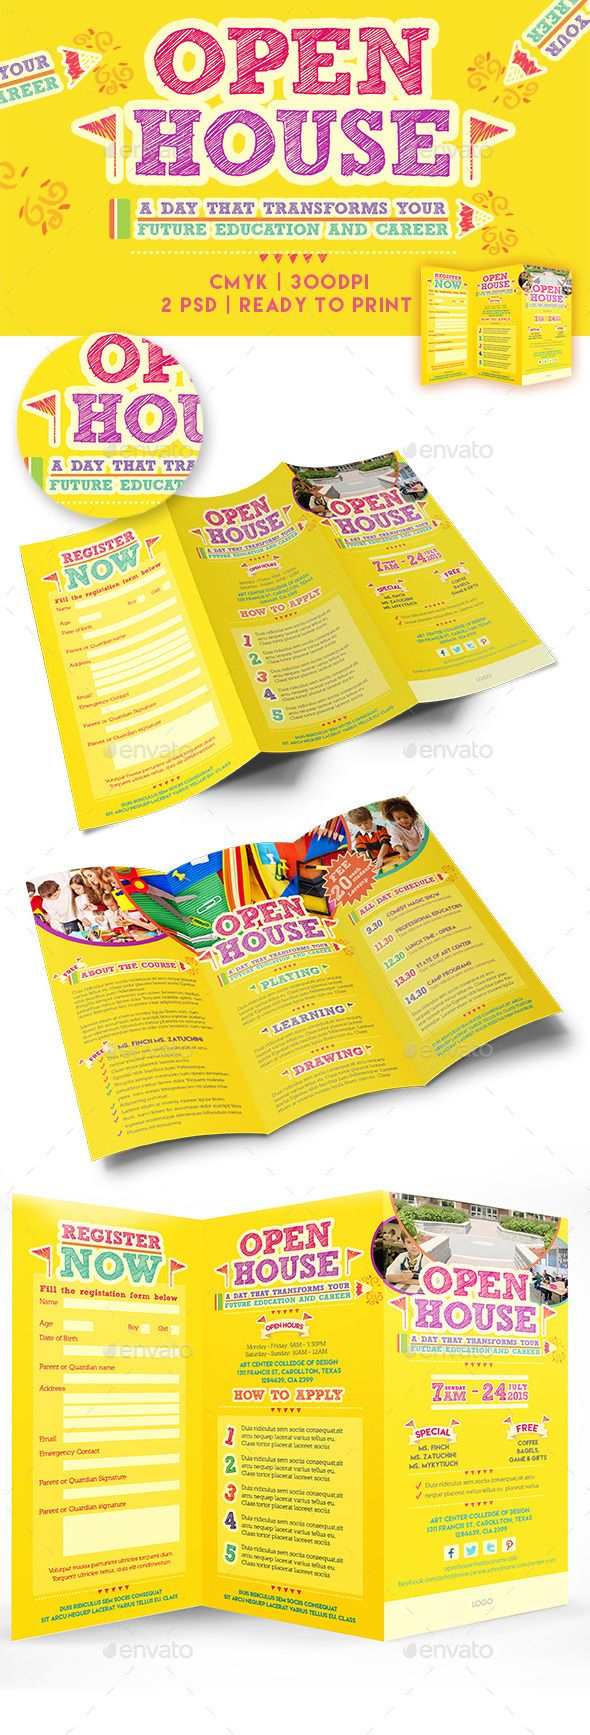 Open House Trifold Brochure Template Event Flyers Brochure